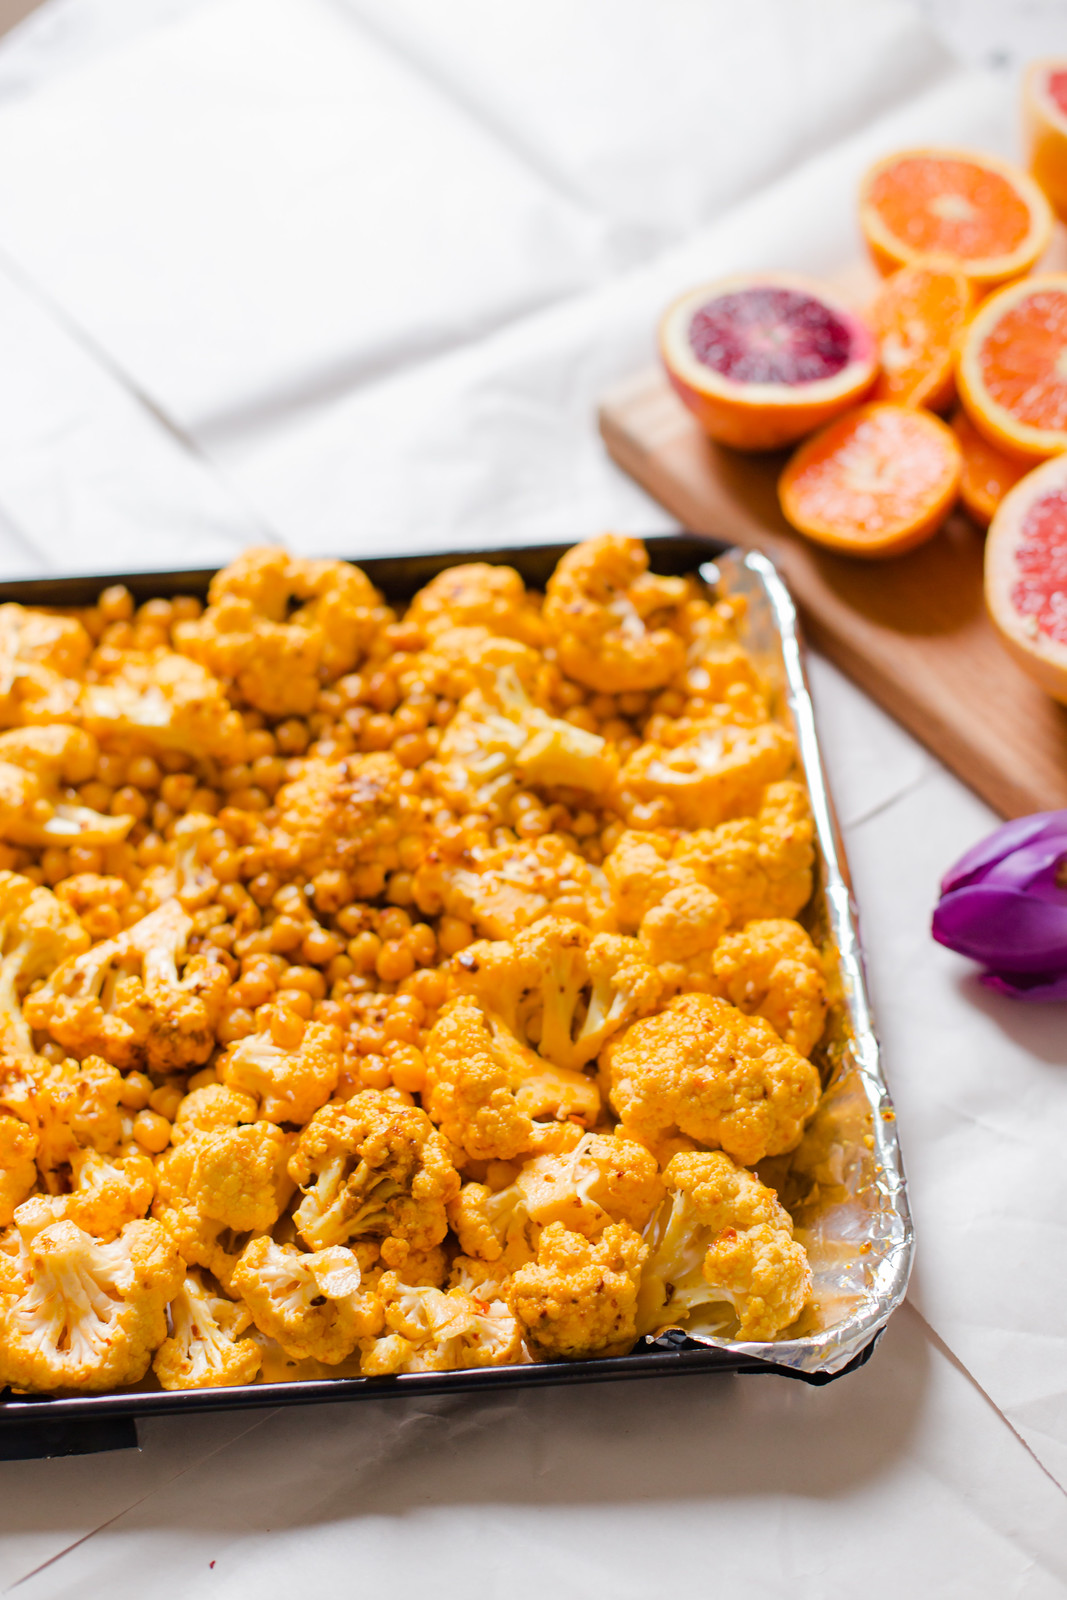 Turmeric Roasted Cauliflower, Chickpea and Quinoa | Elsa Brobbey